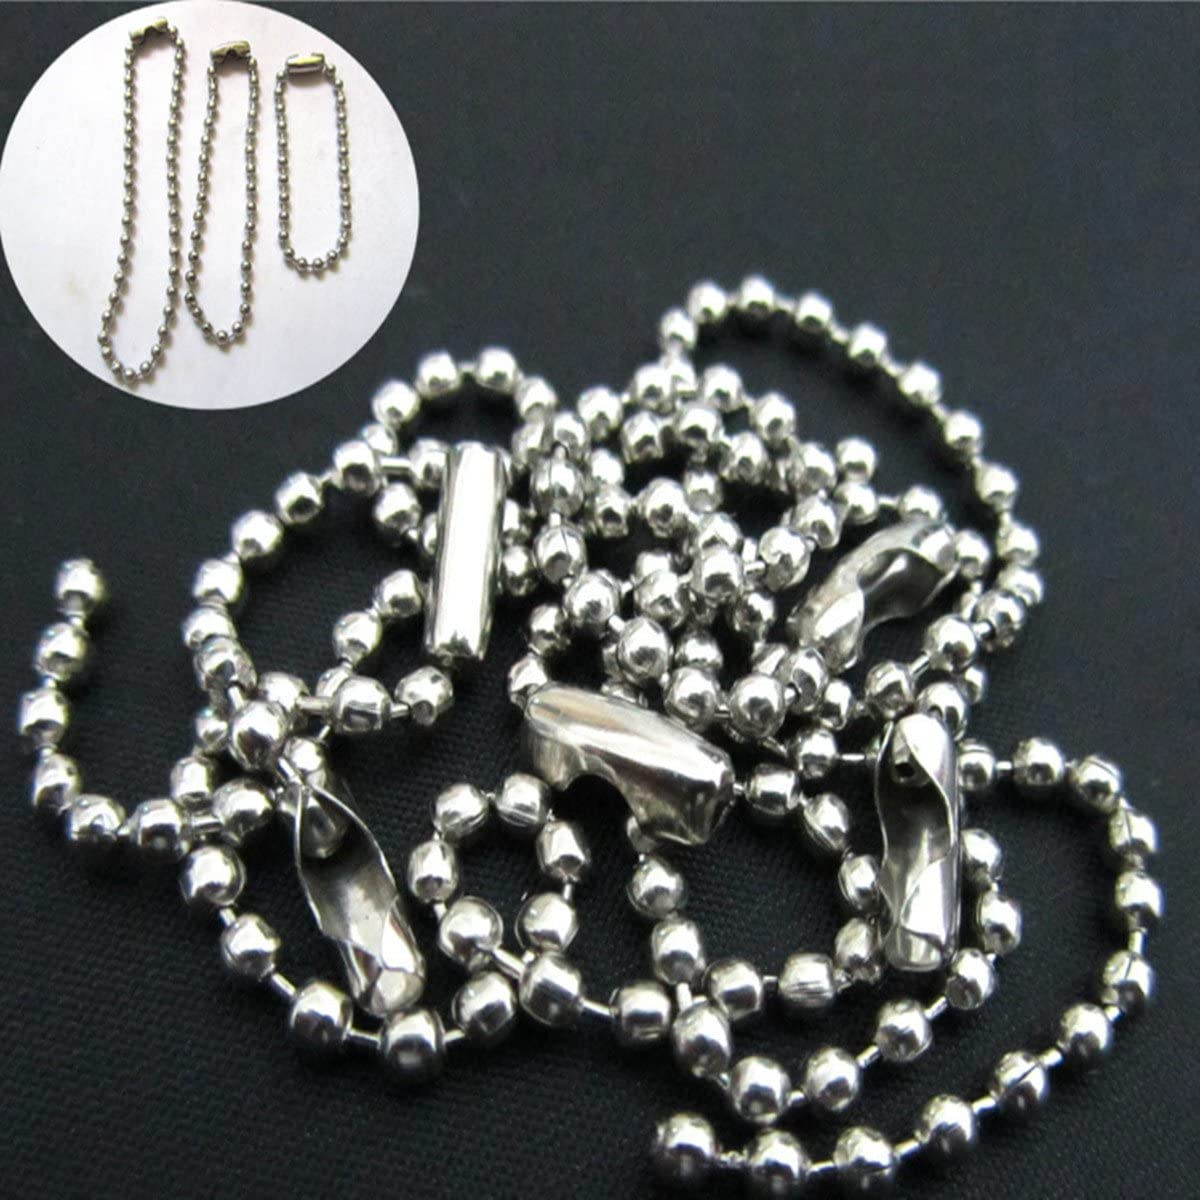 4 pack Beaded Pull Chain Extension, Each Chain Length 39 Inch (1 Meter) with Two Additional Matching Connectors, 3.2 mm Diameter Beaded, Silvery - -